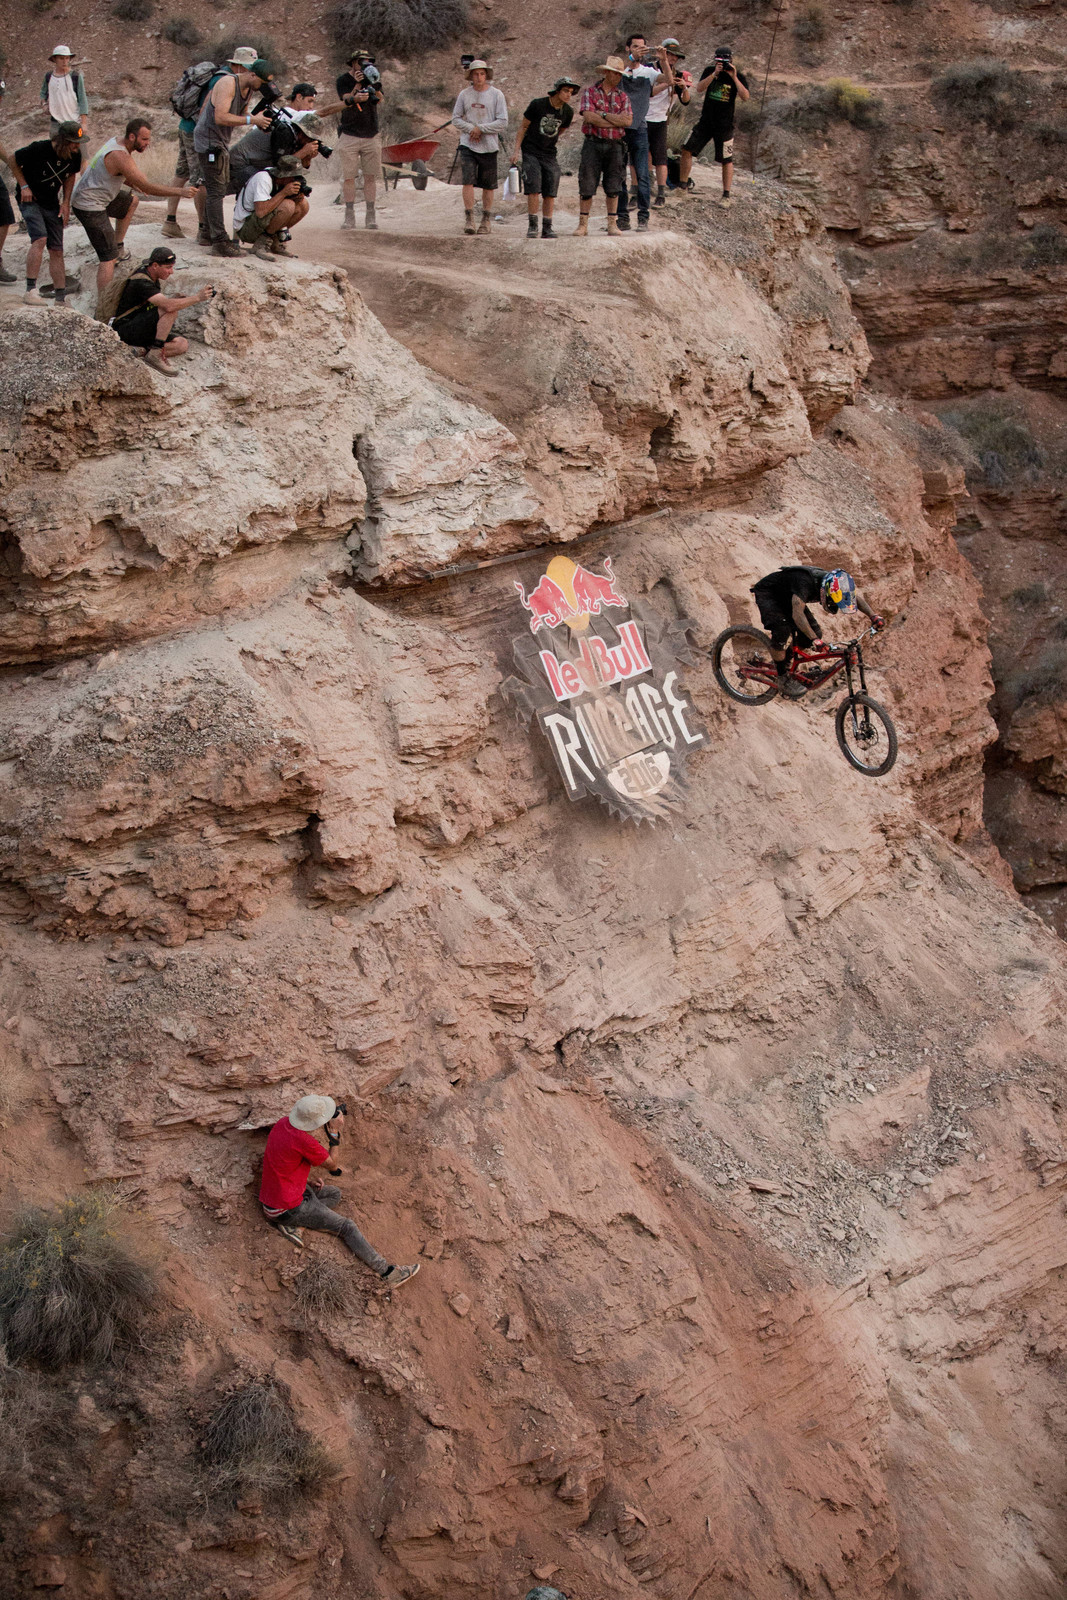 Andreu Lacondeguy Launches - Going Big at Rampage - Line Testing - Mountain Biking Pictures - Vital MTB